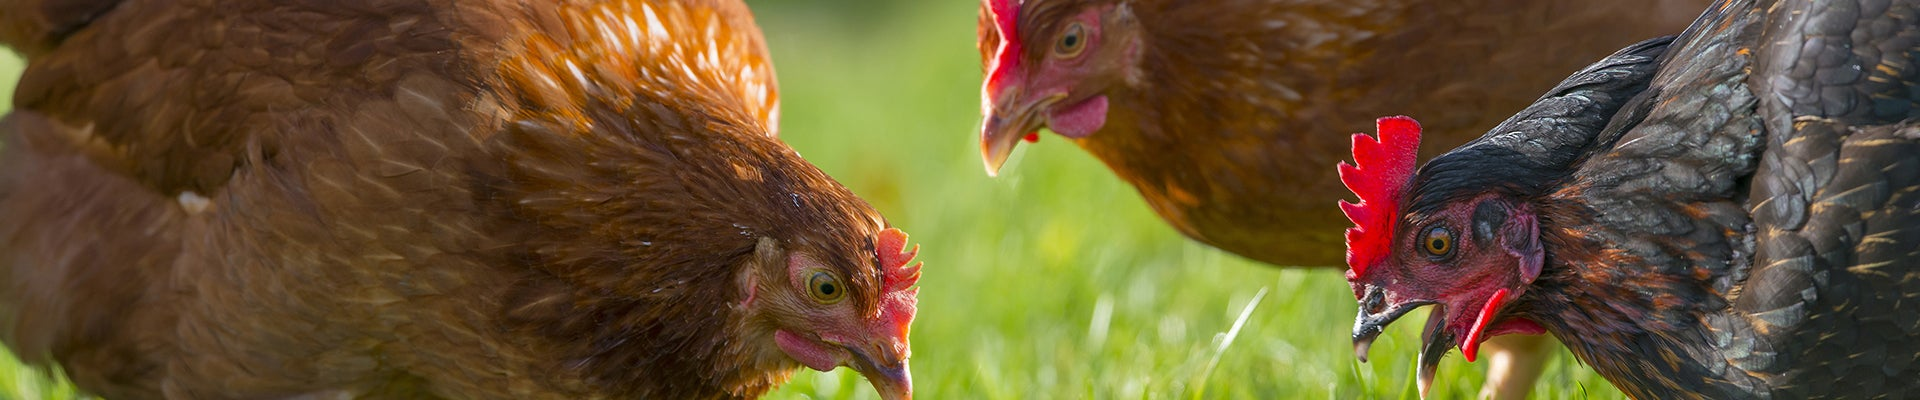 Poultry on grass background